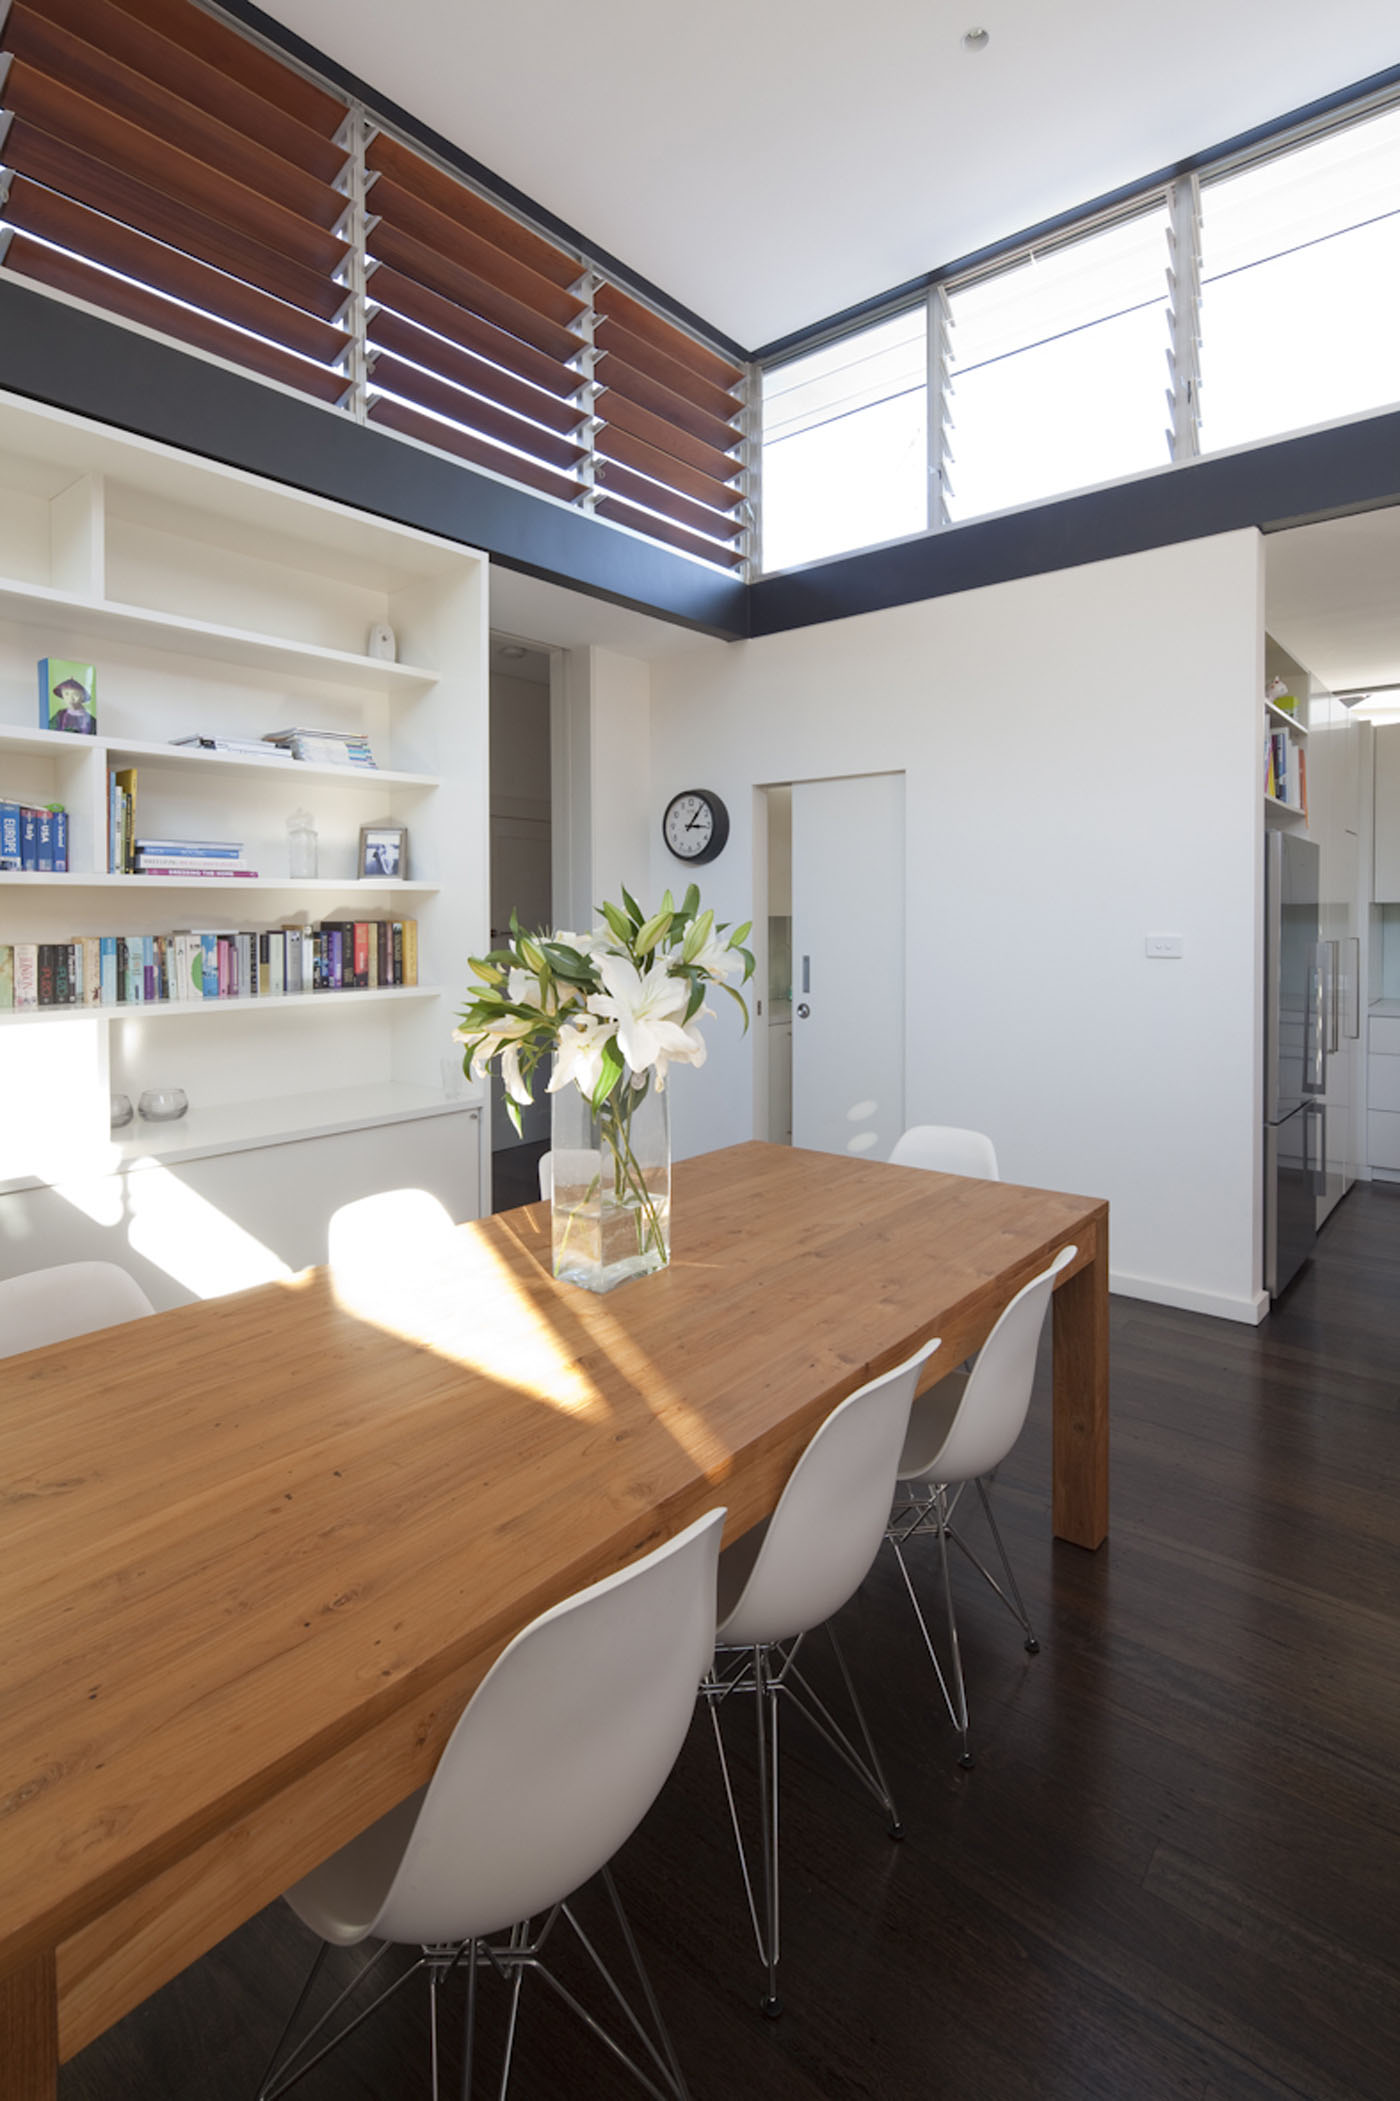 Lambert House by Sydney award winning residential architecture office Sam Crawford Architects. Light filled dining room with timber and glass louvers.